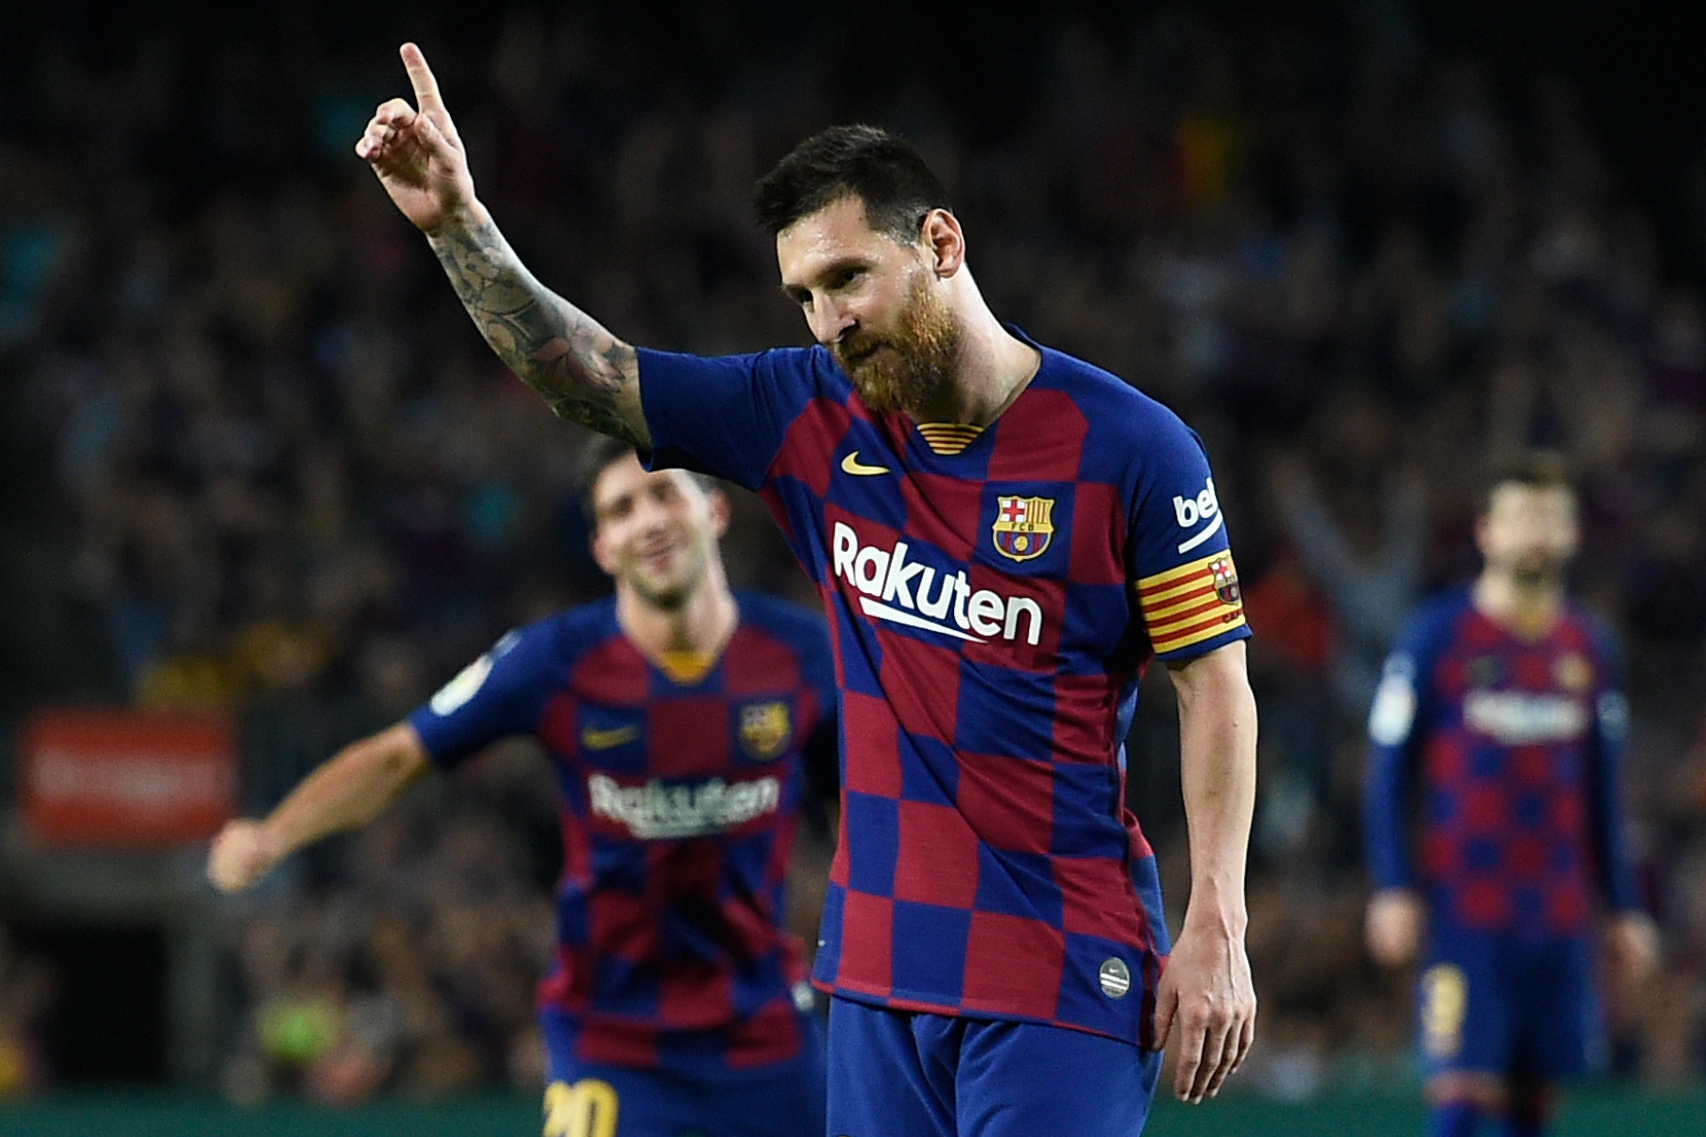 La Liga Table 2019 Week 8: Standings and Final Scores After Sunday |  Bleacher Report | Latest News, Videos and Highlights